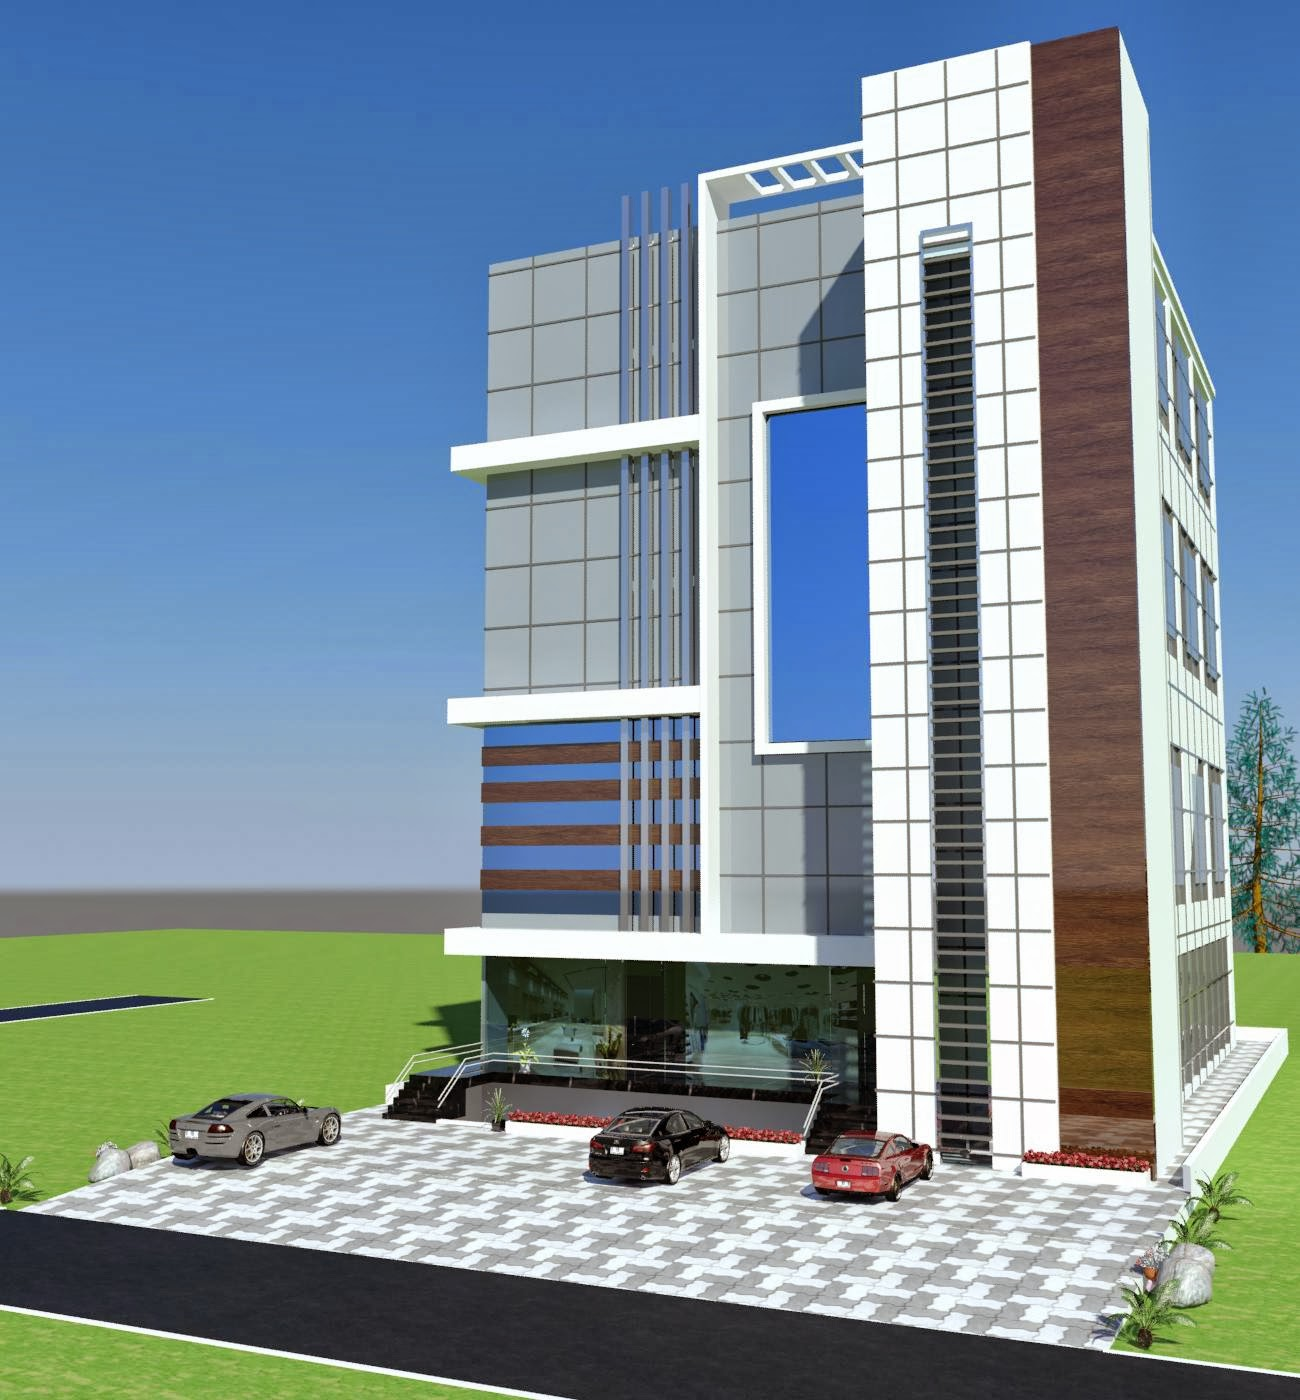 D Front Elevation Of Commercial Building : Casatreschic interior commercial plaza plan d front